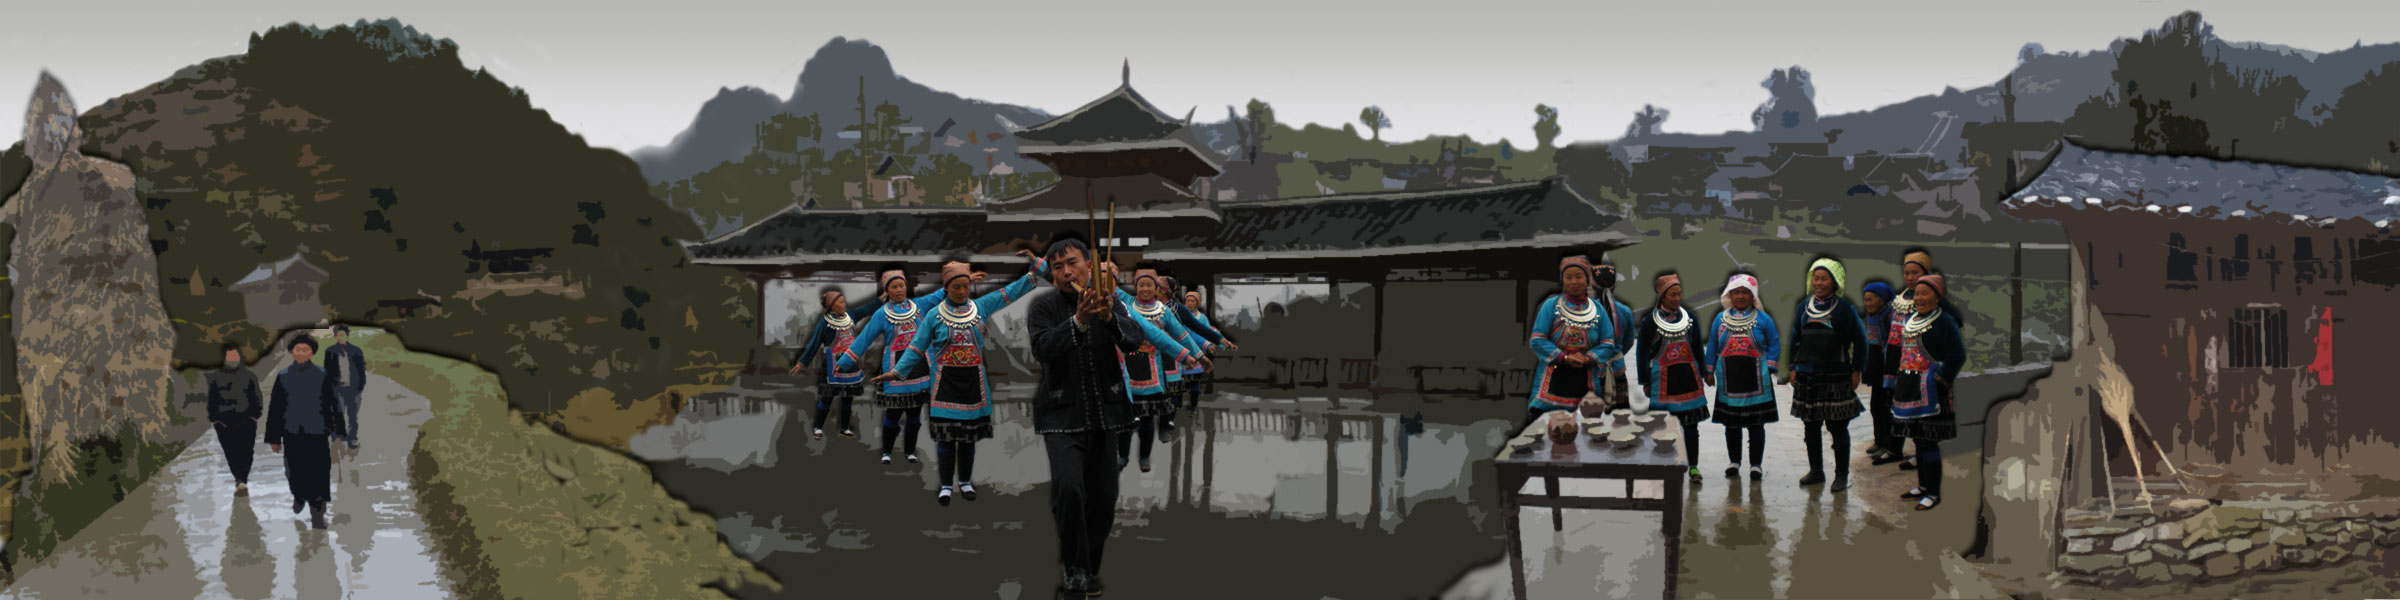 Walkers, performers at a temple and children at a tea table in a panoramic collage